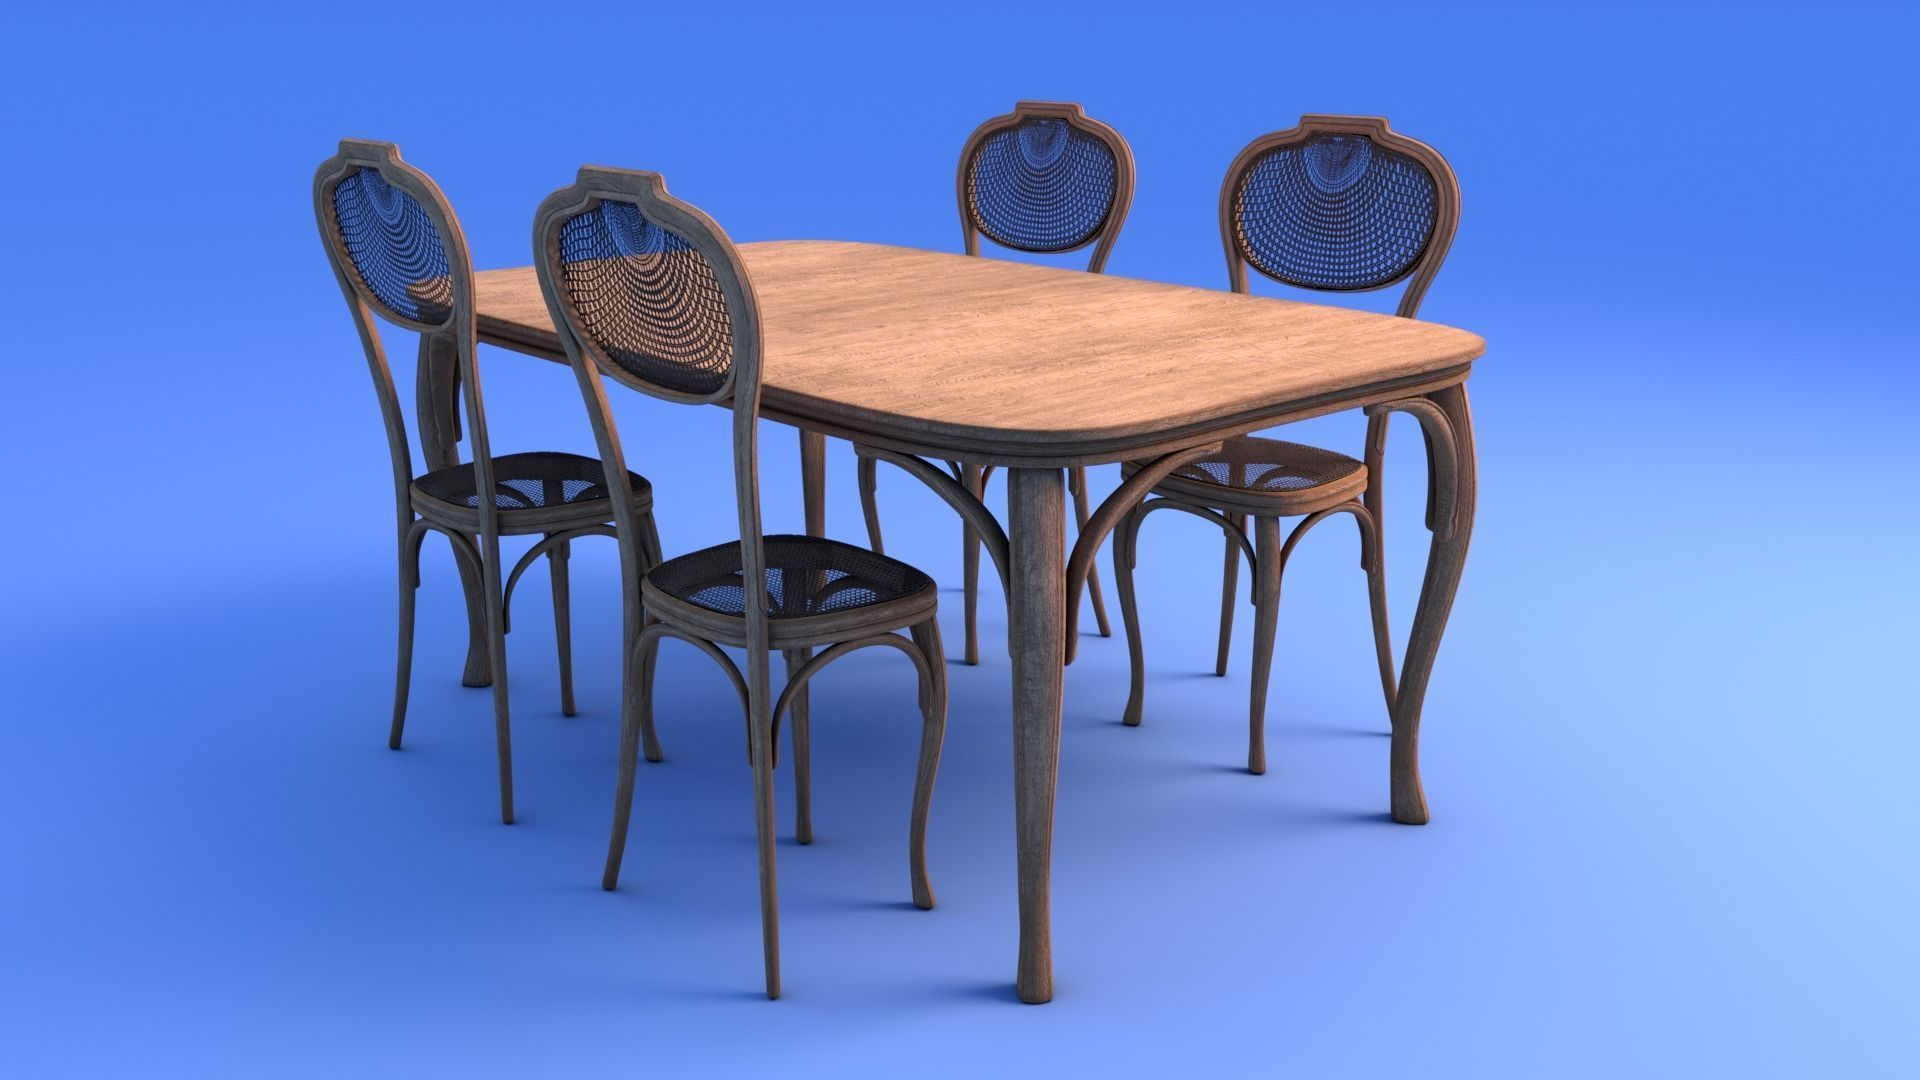 Art Nouveau Dining Table And Chairs 3d Model Obj Mtl Fbx Ma Mb 5